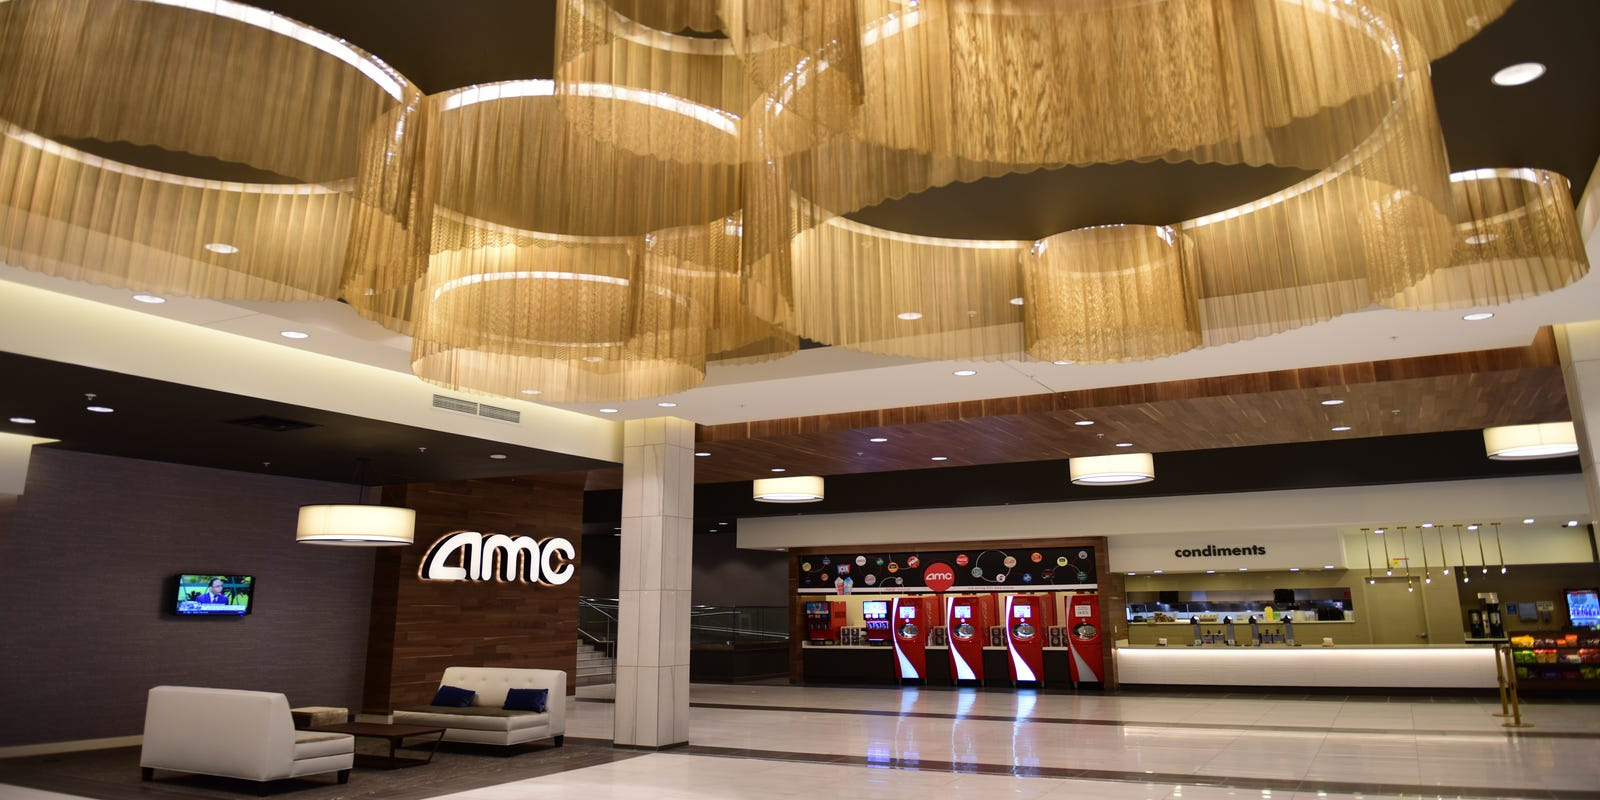 AMC dine-in theater opening in Hackensack